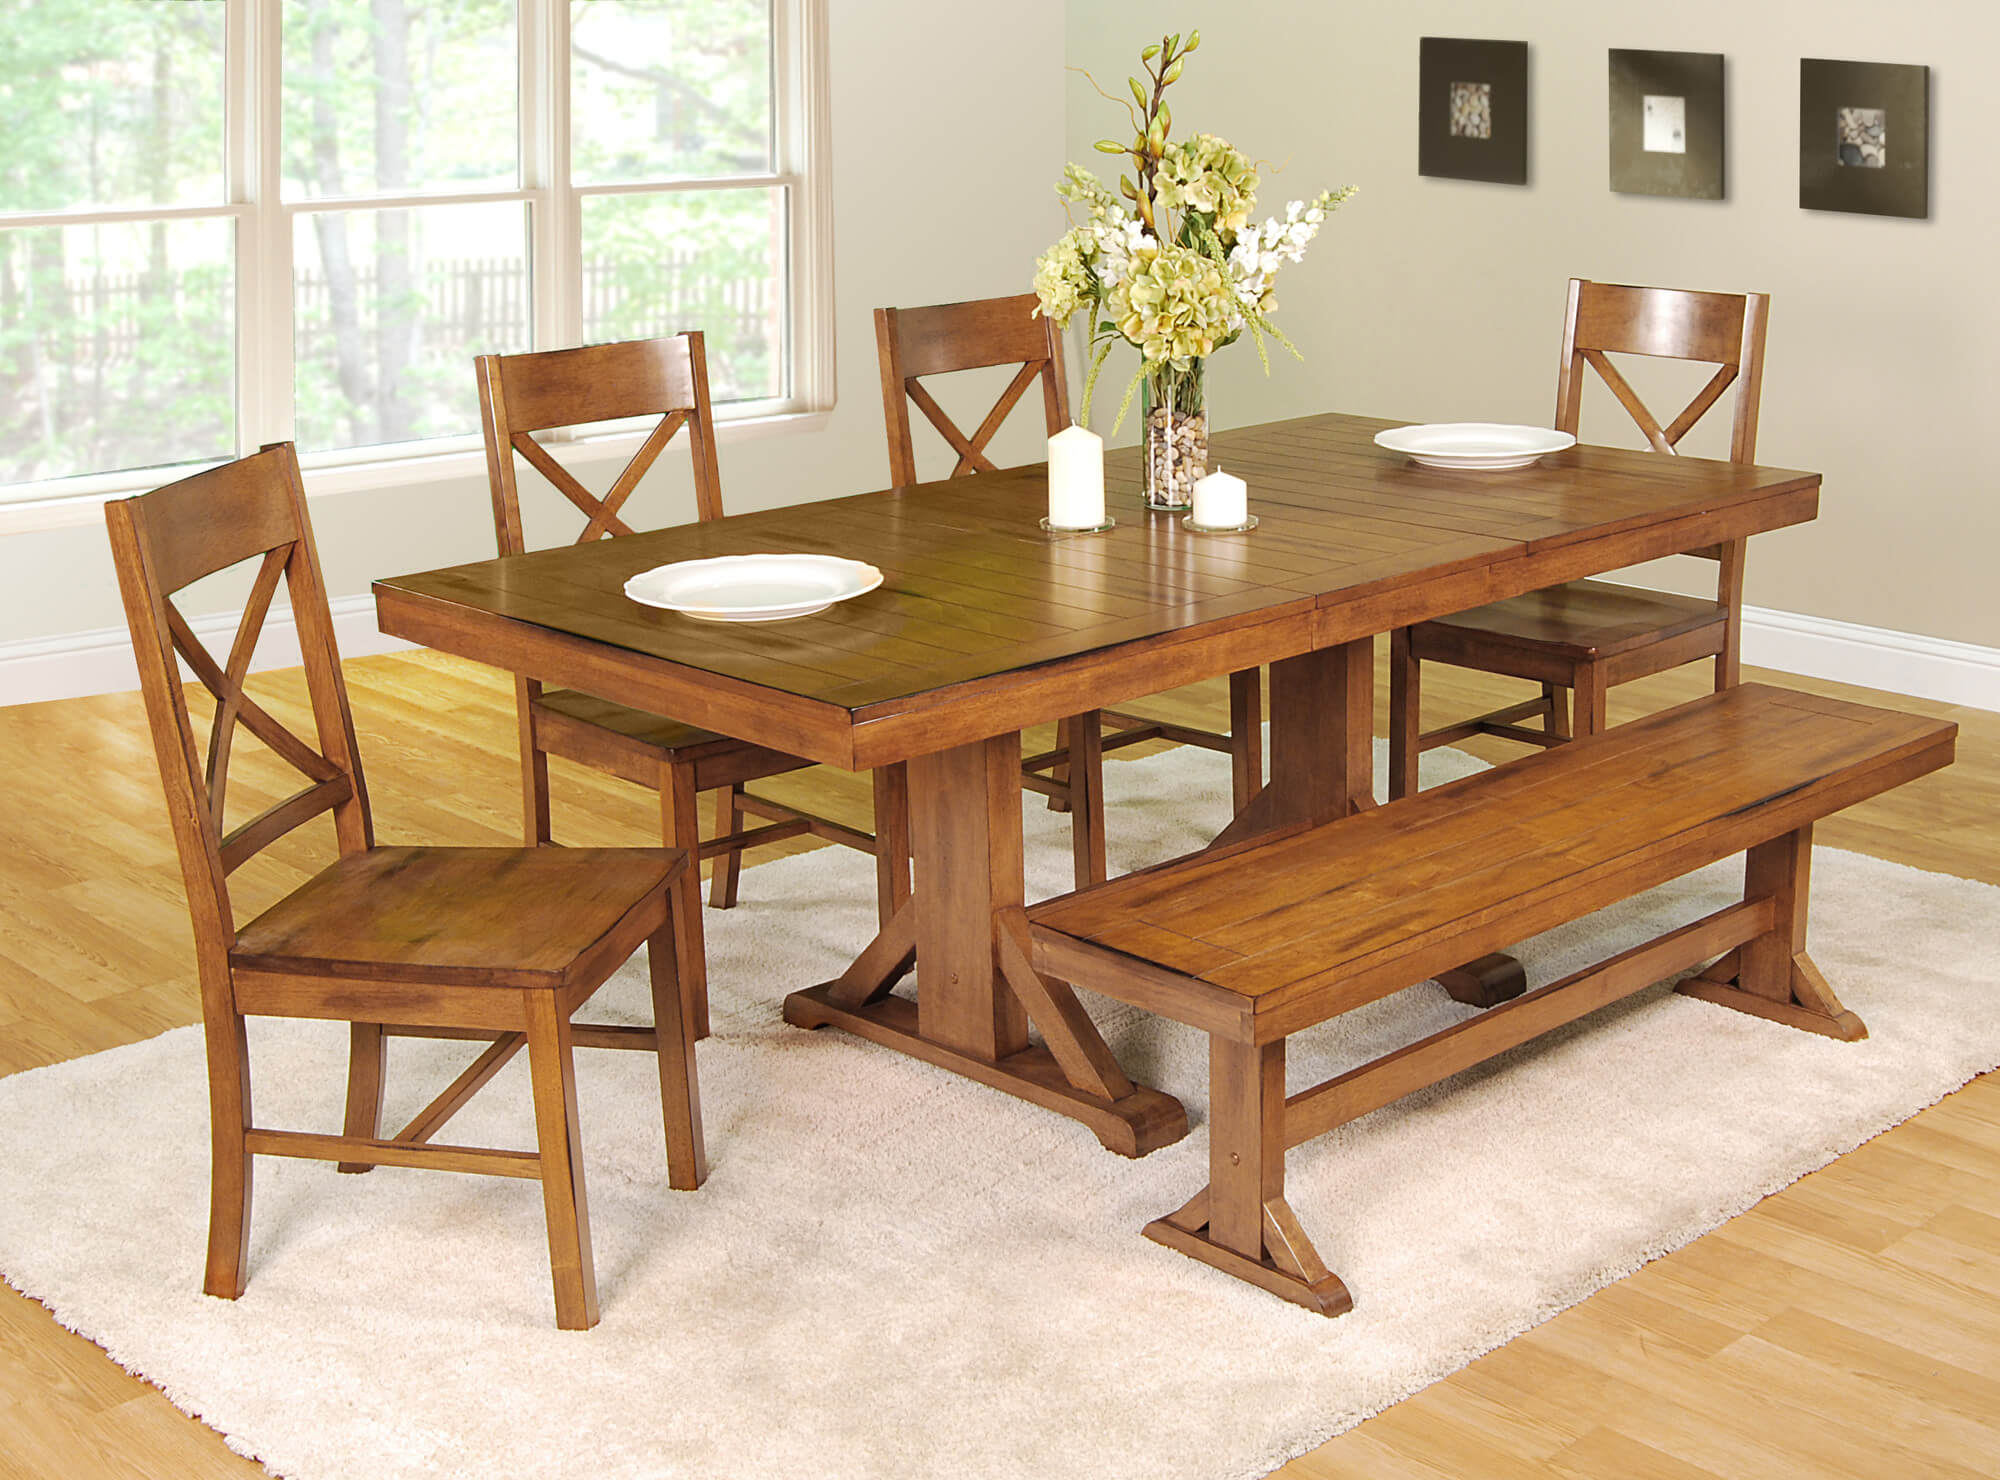 this dining room set with bench is going for the antique look with an antique brown - Country Dining Room Design